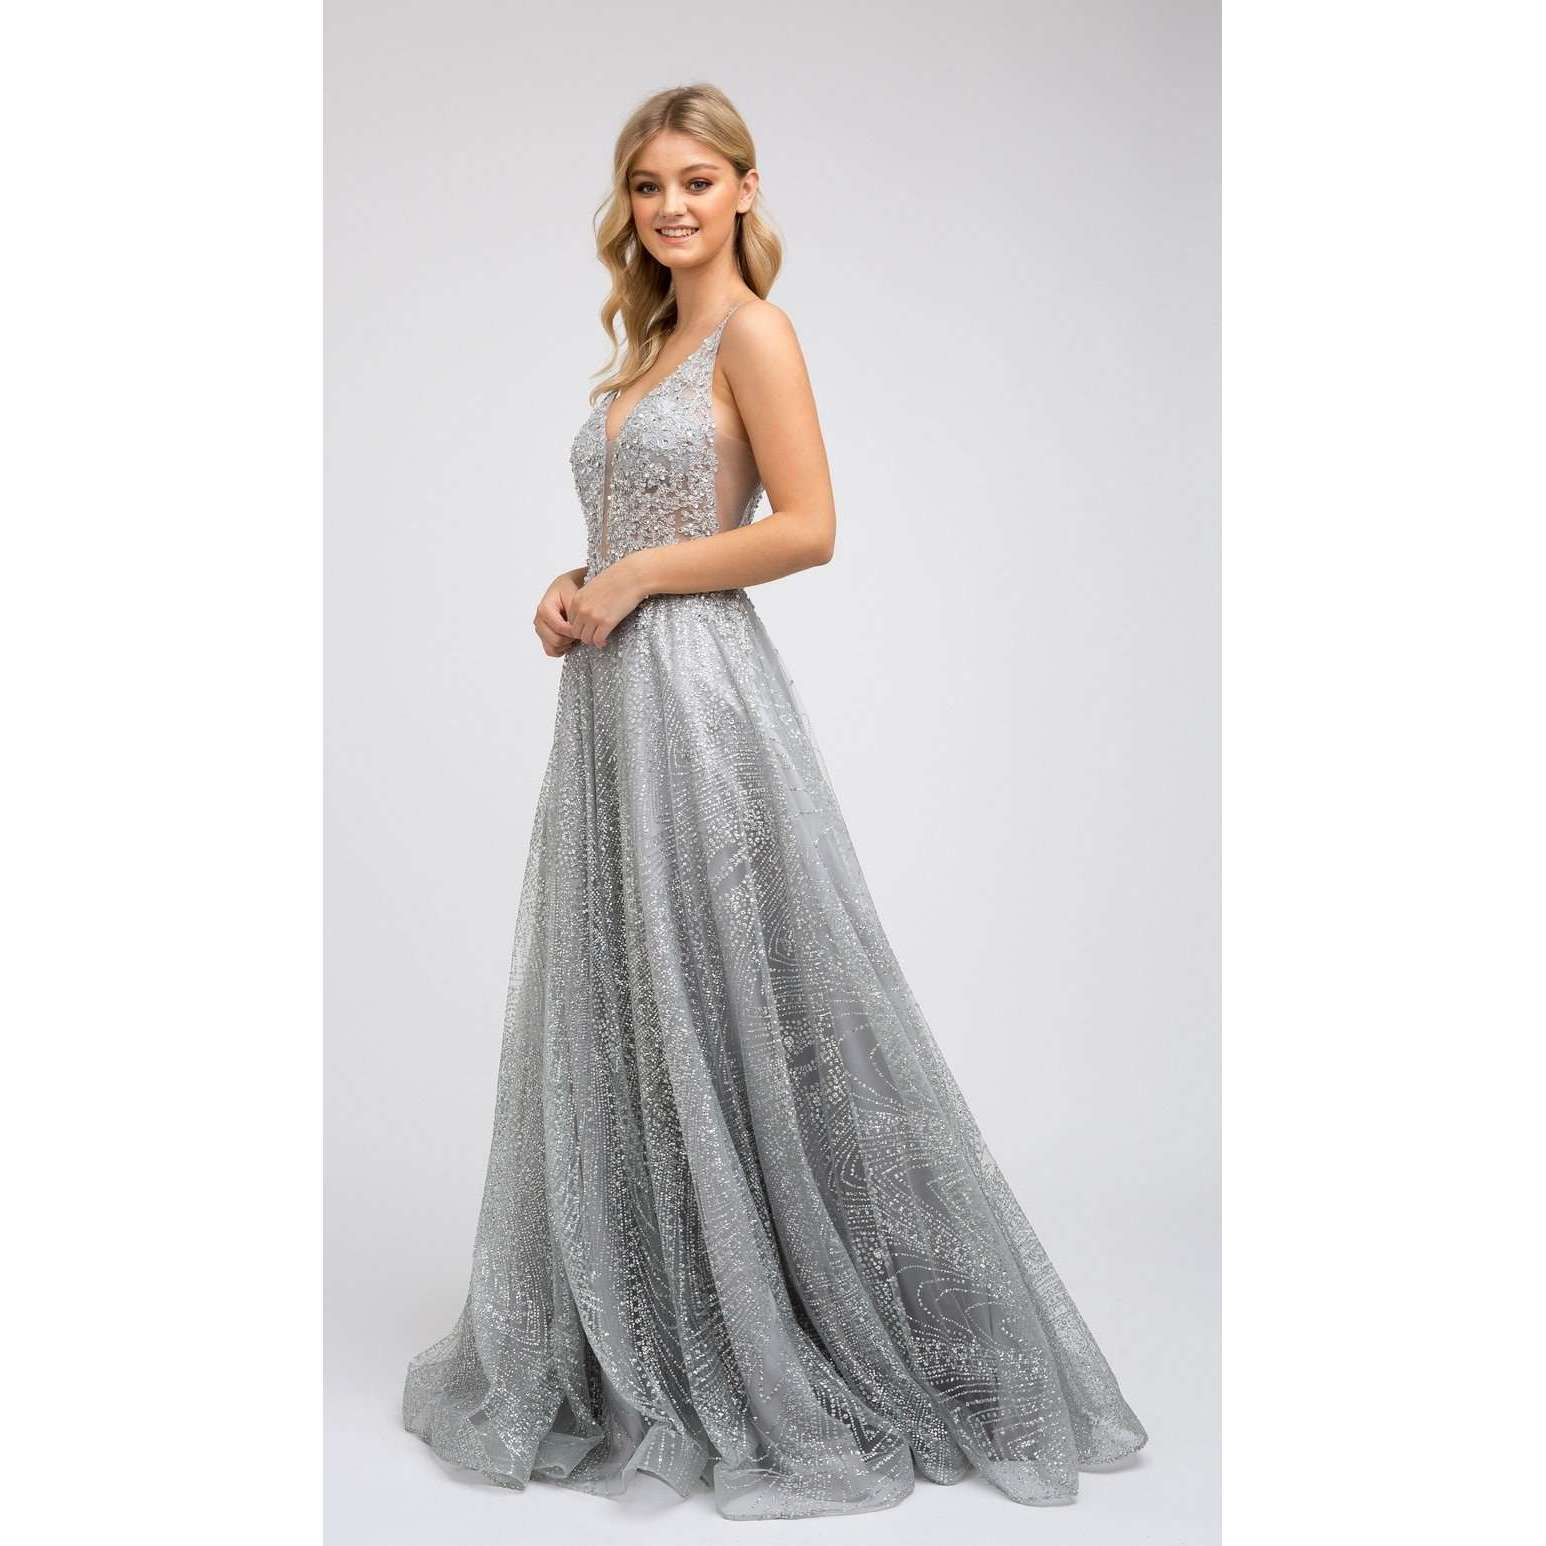 Embroidered Prom Evening Gown 235 - Julietdresses